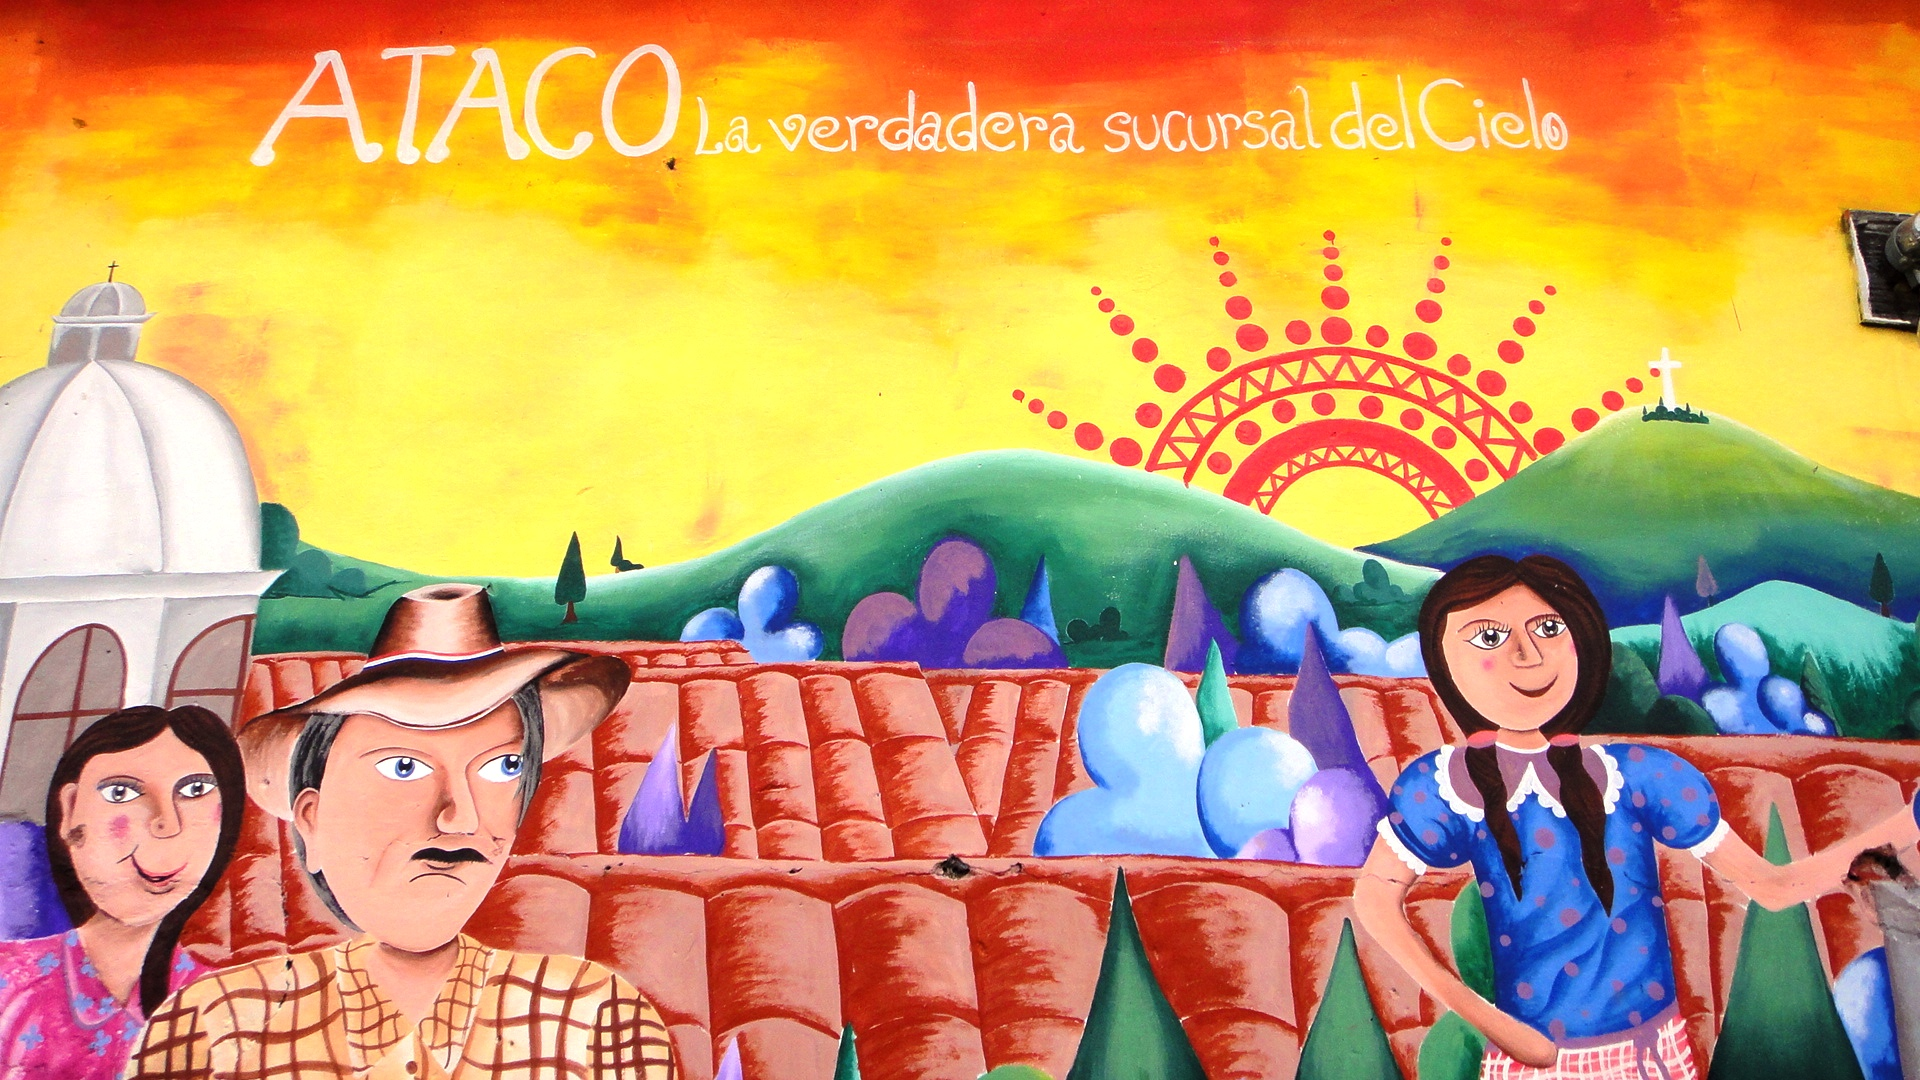 Ataco - places to visit in el salvador - welcome